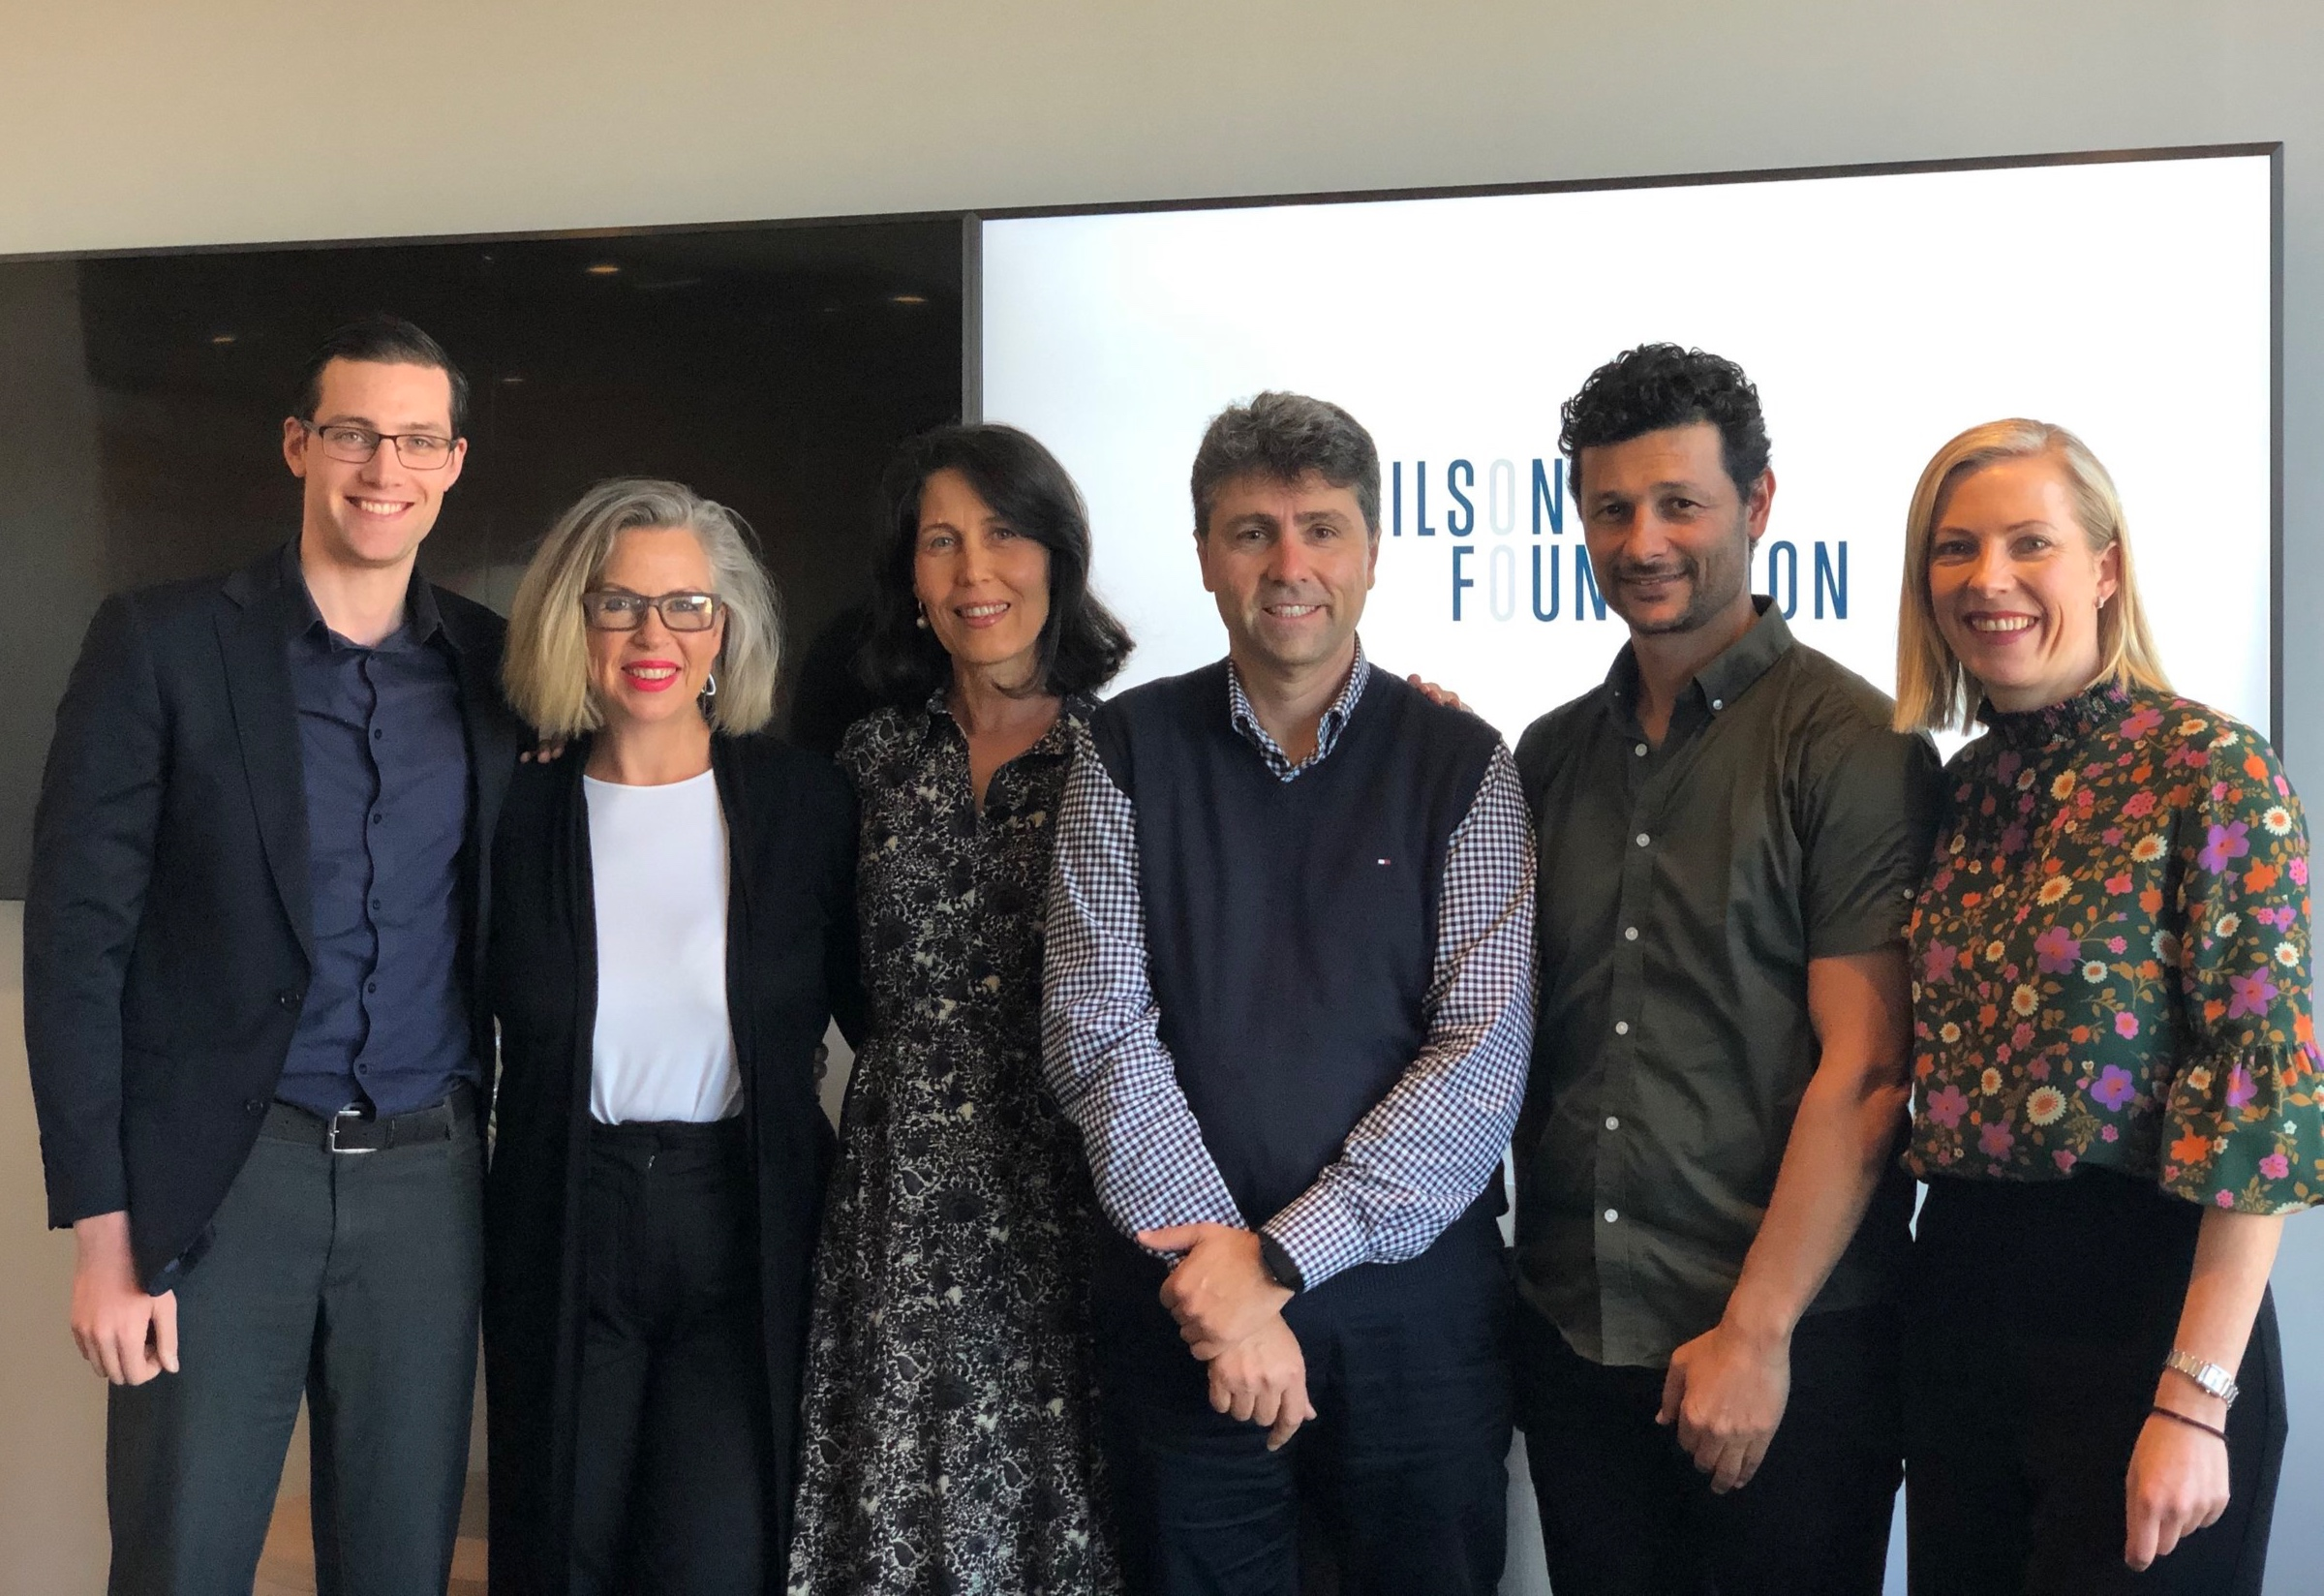 L-R: Dr Sam Manger, President  ASLM ; Prof. Felice Jacka, Director  Food & Mood Centre ; Karen Wilson, Chair Wilson Foundation; Prof. Jim Lagopoulos, Director  Sunshine Coast Mind & Neuroscience Thompson Institute ; Prof. Murat Yucel, Director  BrainPark ; Kirsten Ross, Foundation Manager Wilson Foundation